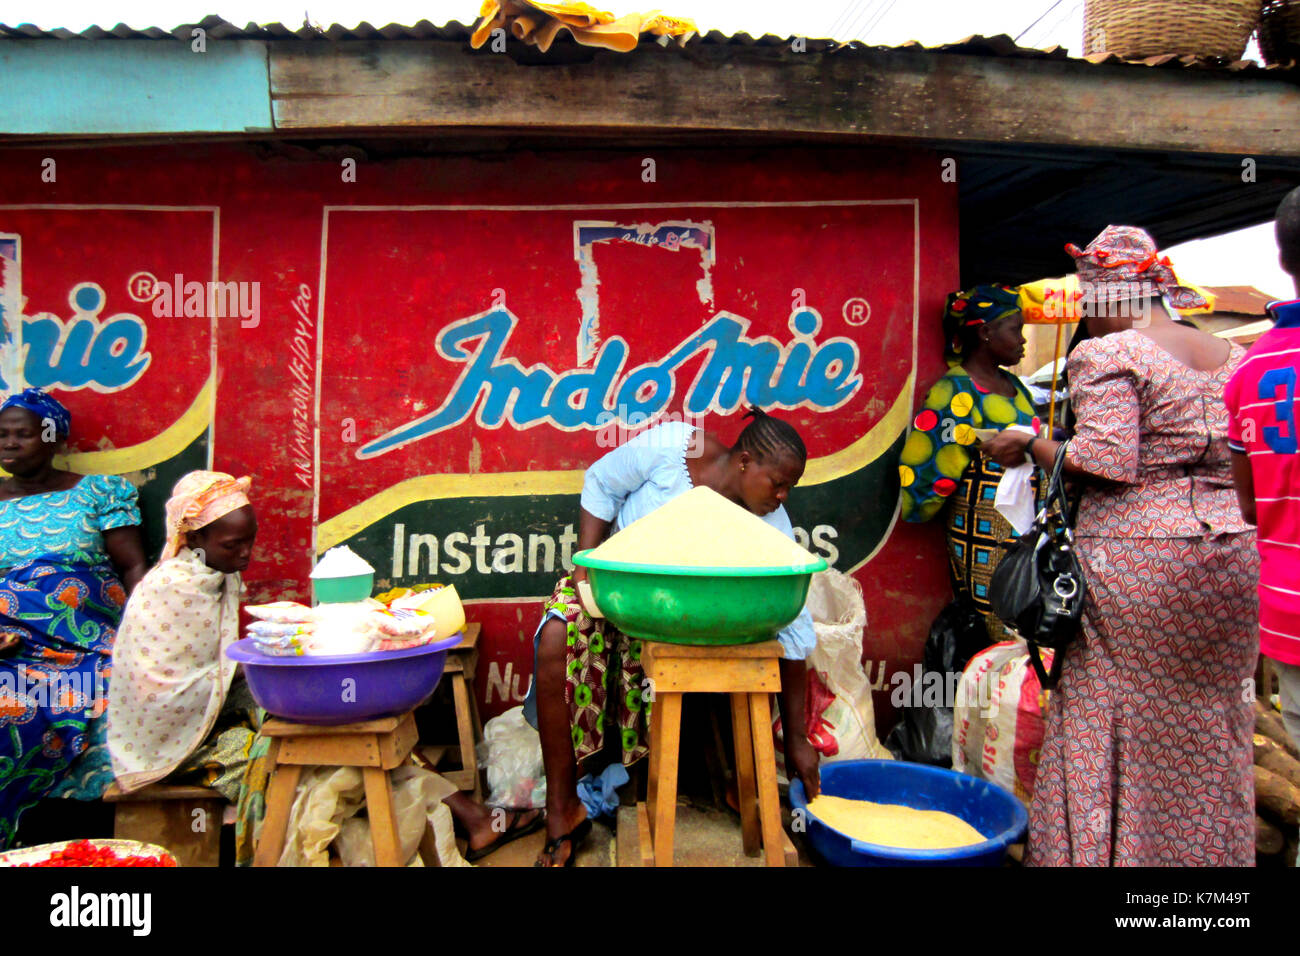 Women selling yam flour and different goods in the city of Lagos, Nigeria - Stock Image